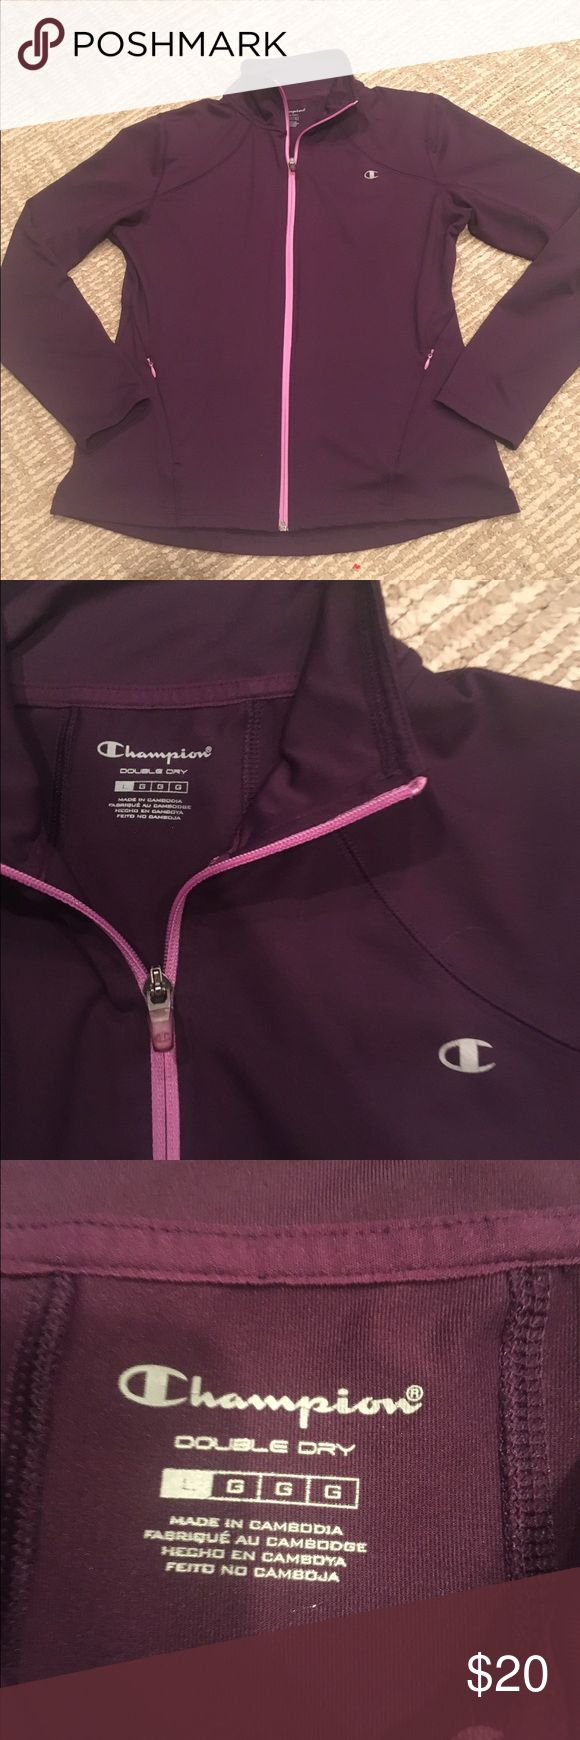 CHAMPION PURPLE ZIP UP JACKET DOUBLE DRY Perfect condition purple zip up champion jacket with two front pockets double dry size large  activewear jacket perfect for the gym or everyday wear! Champion Tops Sweatshirts & Hoodies